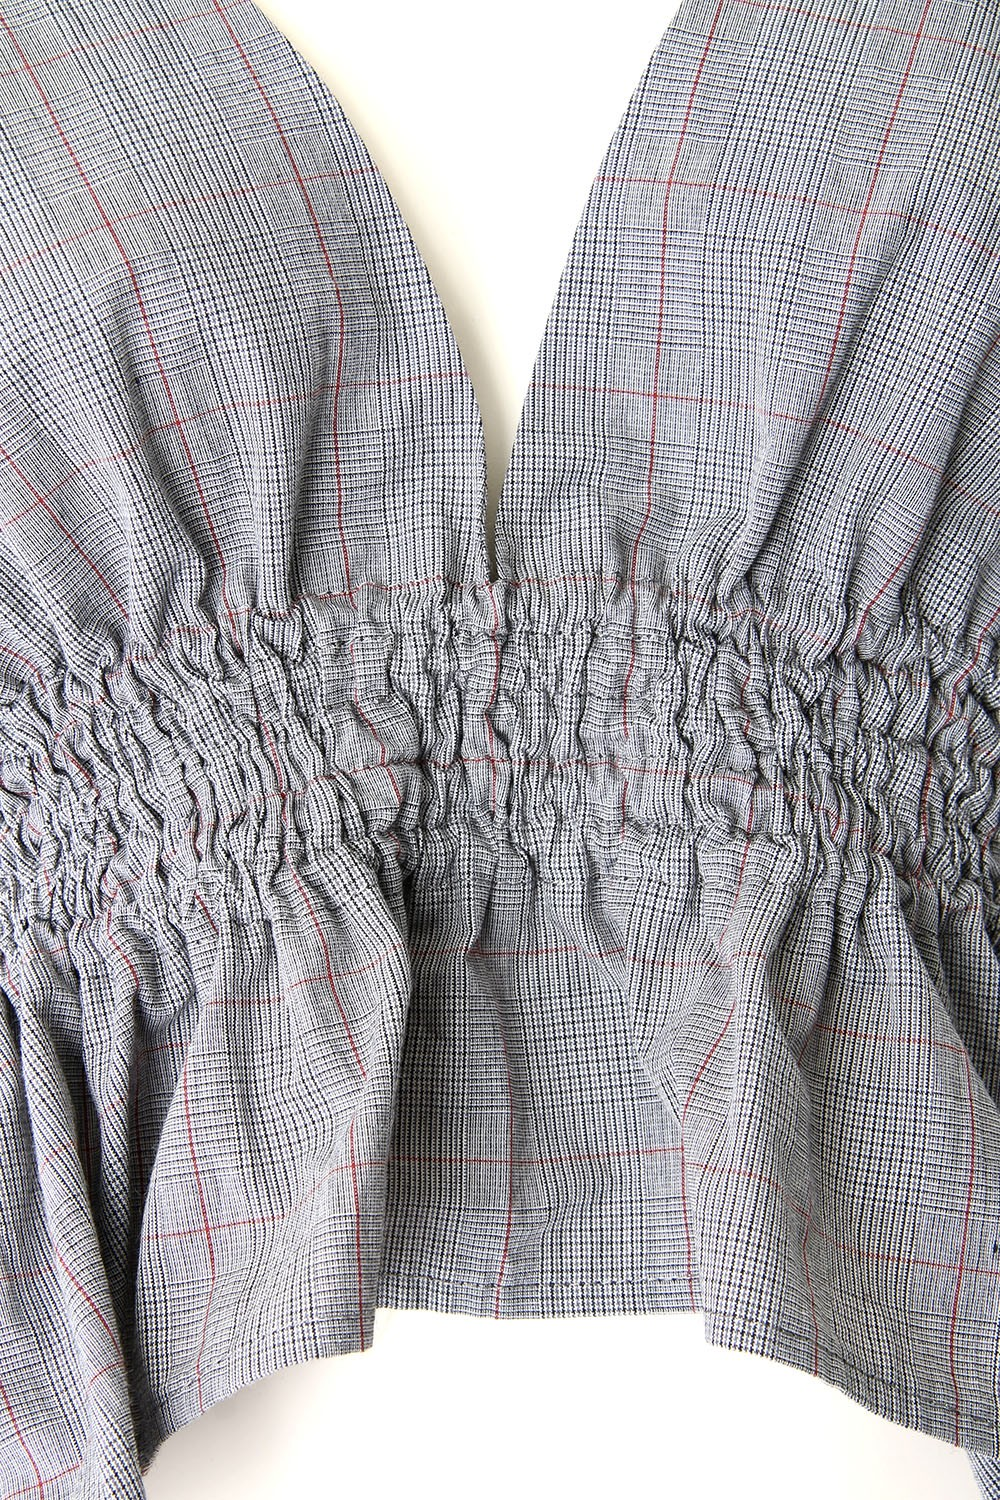 PLAID GATHERED TOP - 17S-DT-02